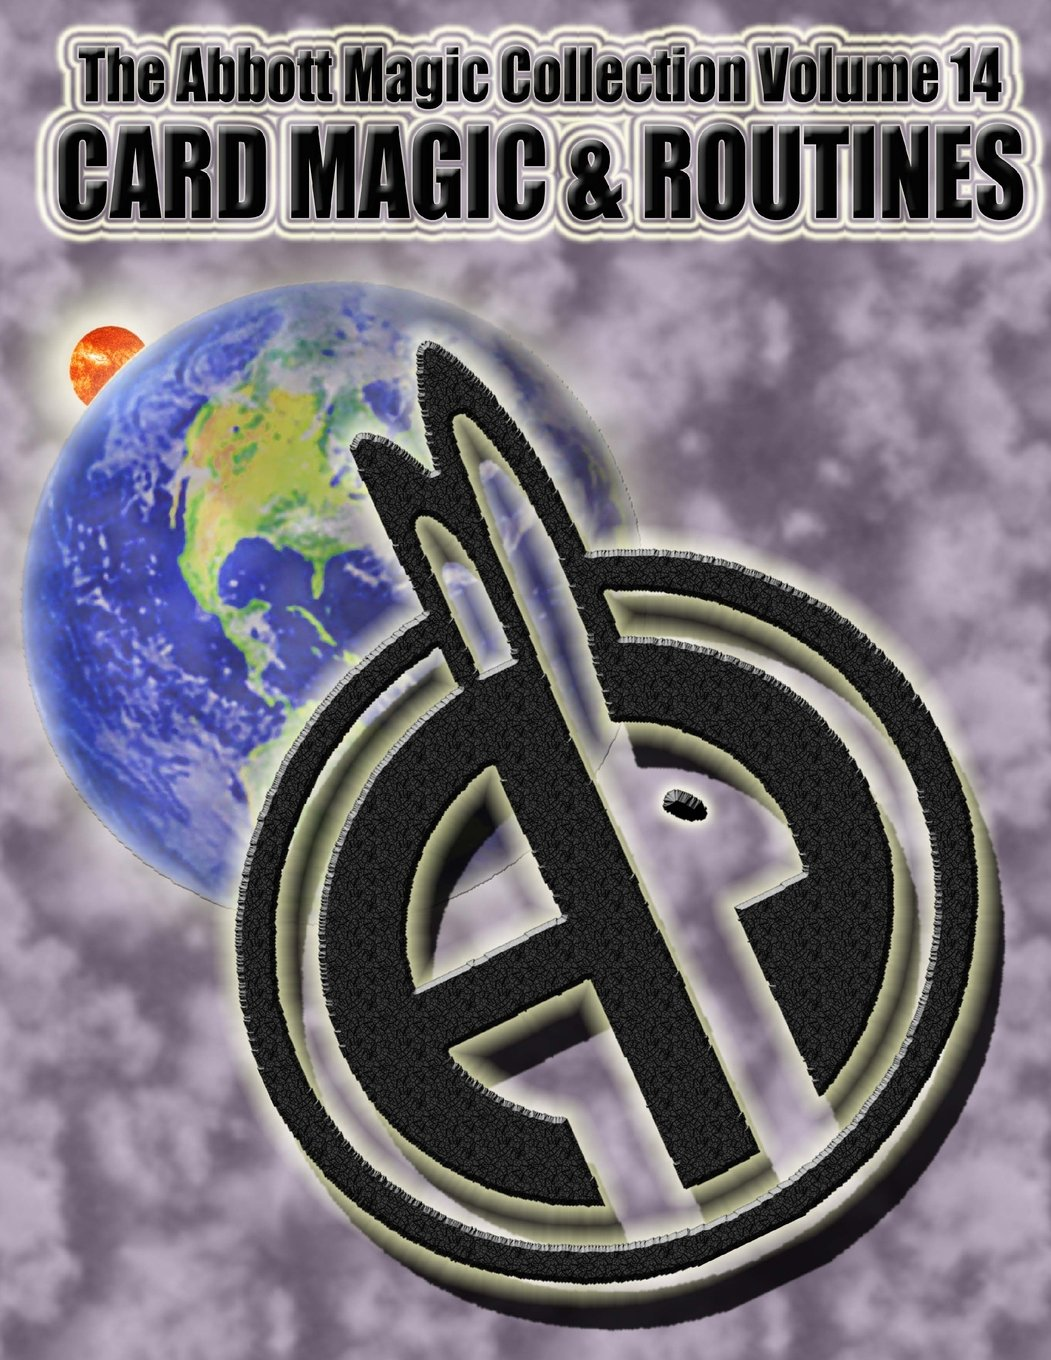 The Abbott Magic Collection Volume 14 Card Magic Routines